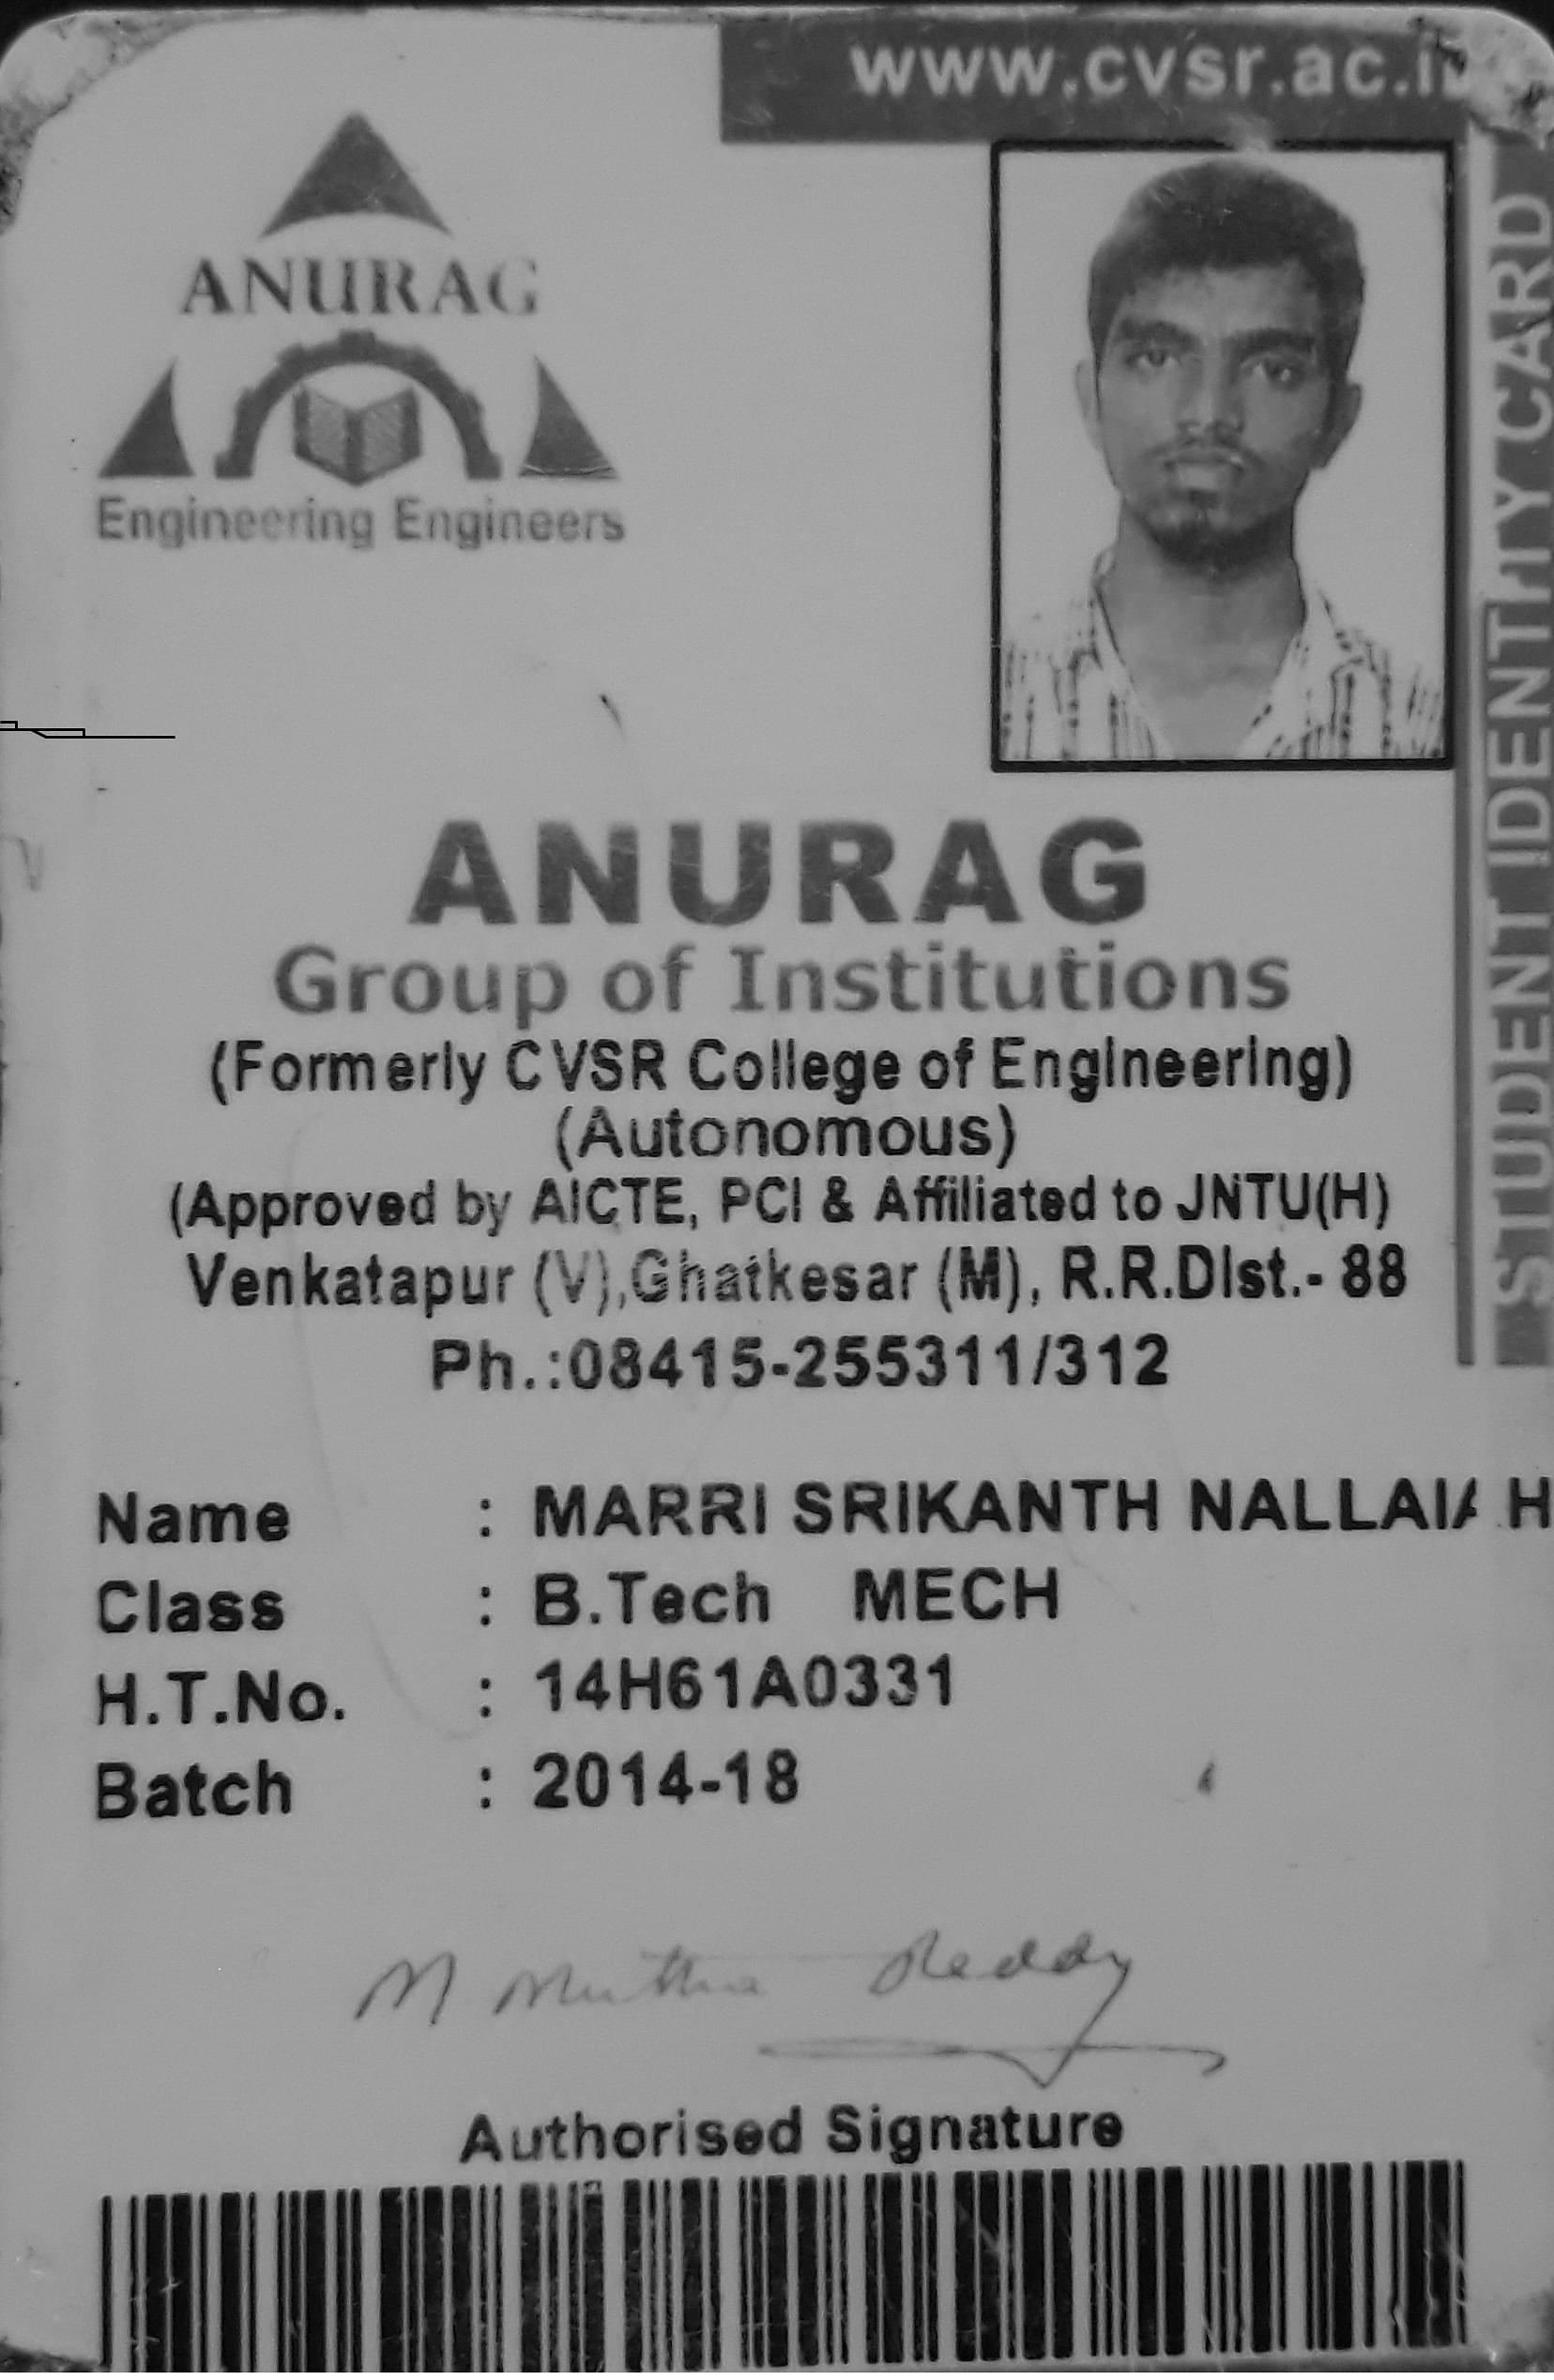 Marri Srikanth Nallaiah's Review On Anurag Group Of Institutions